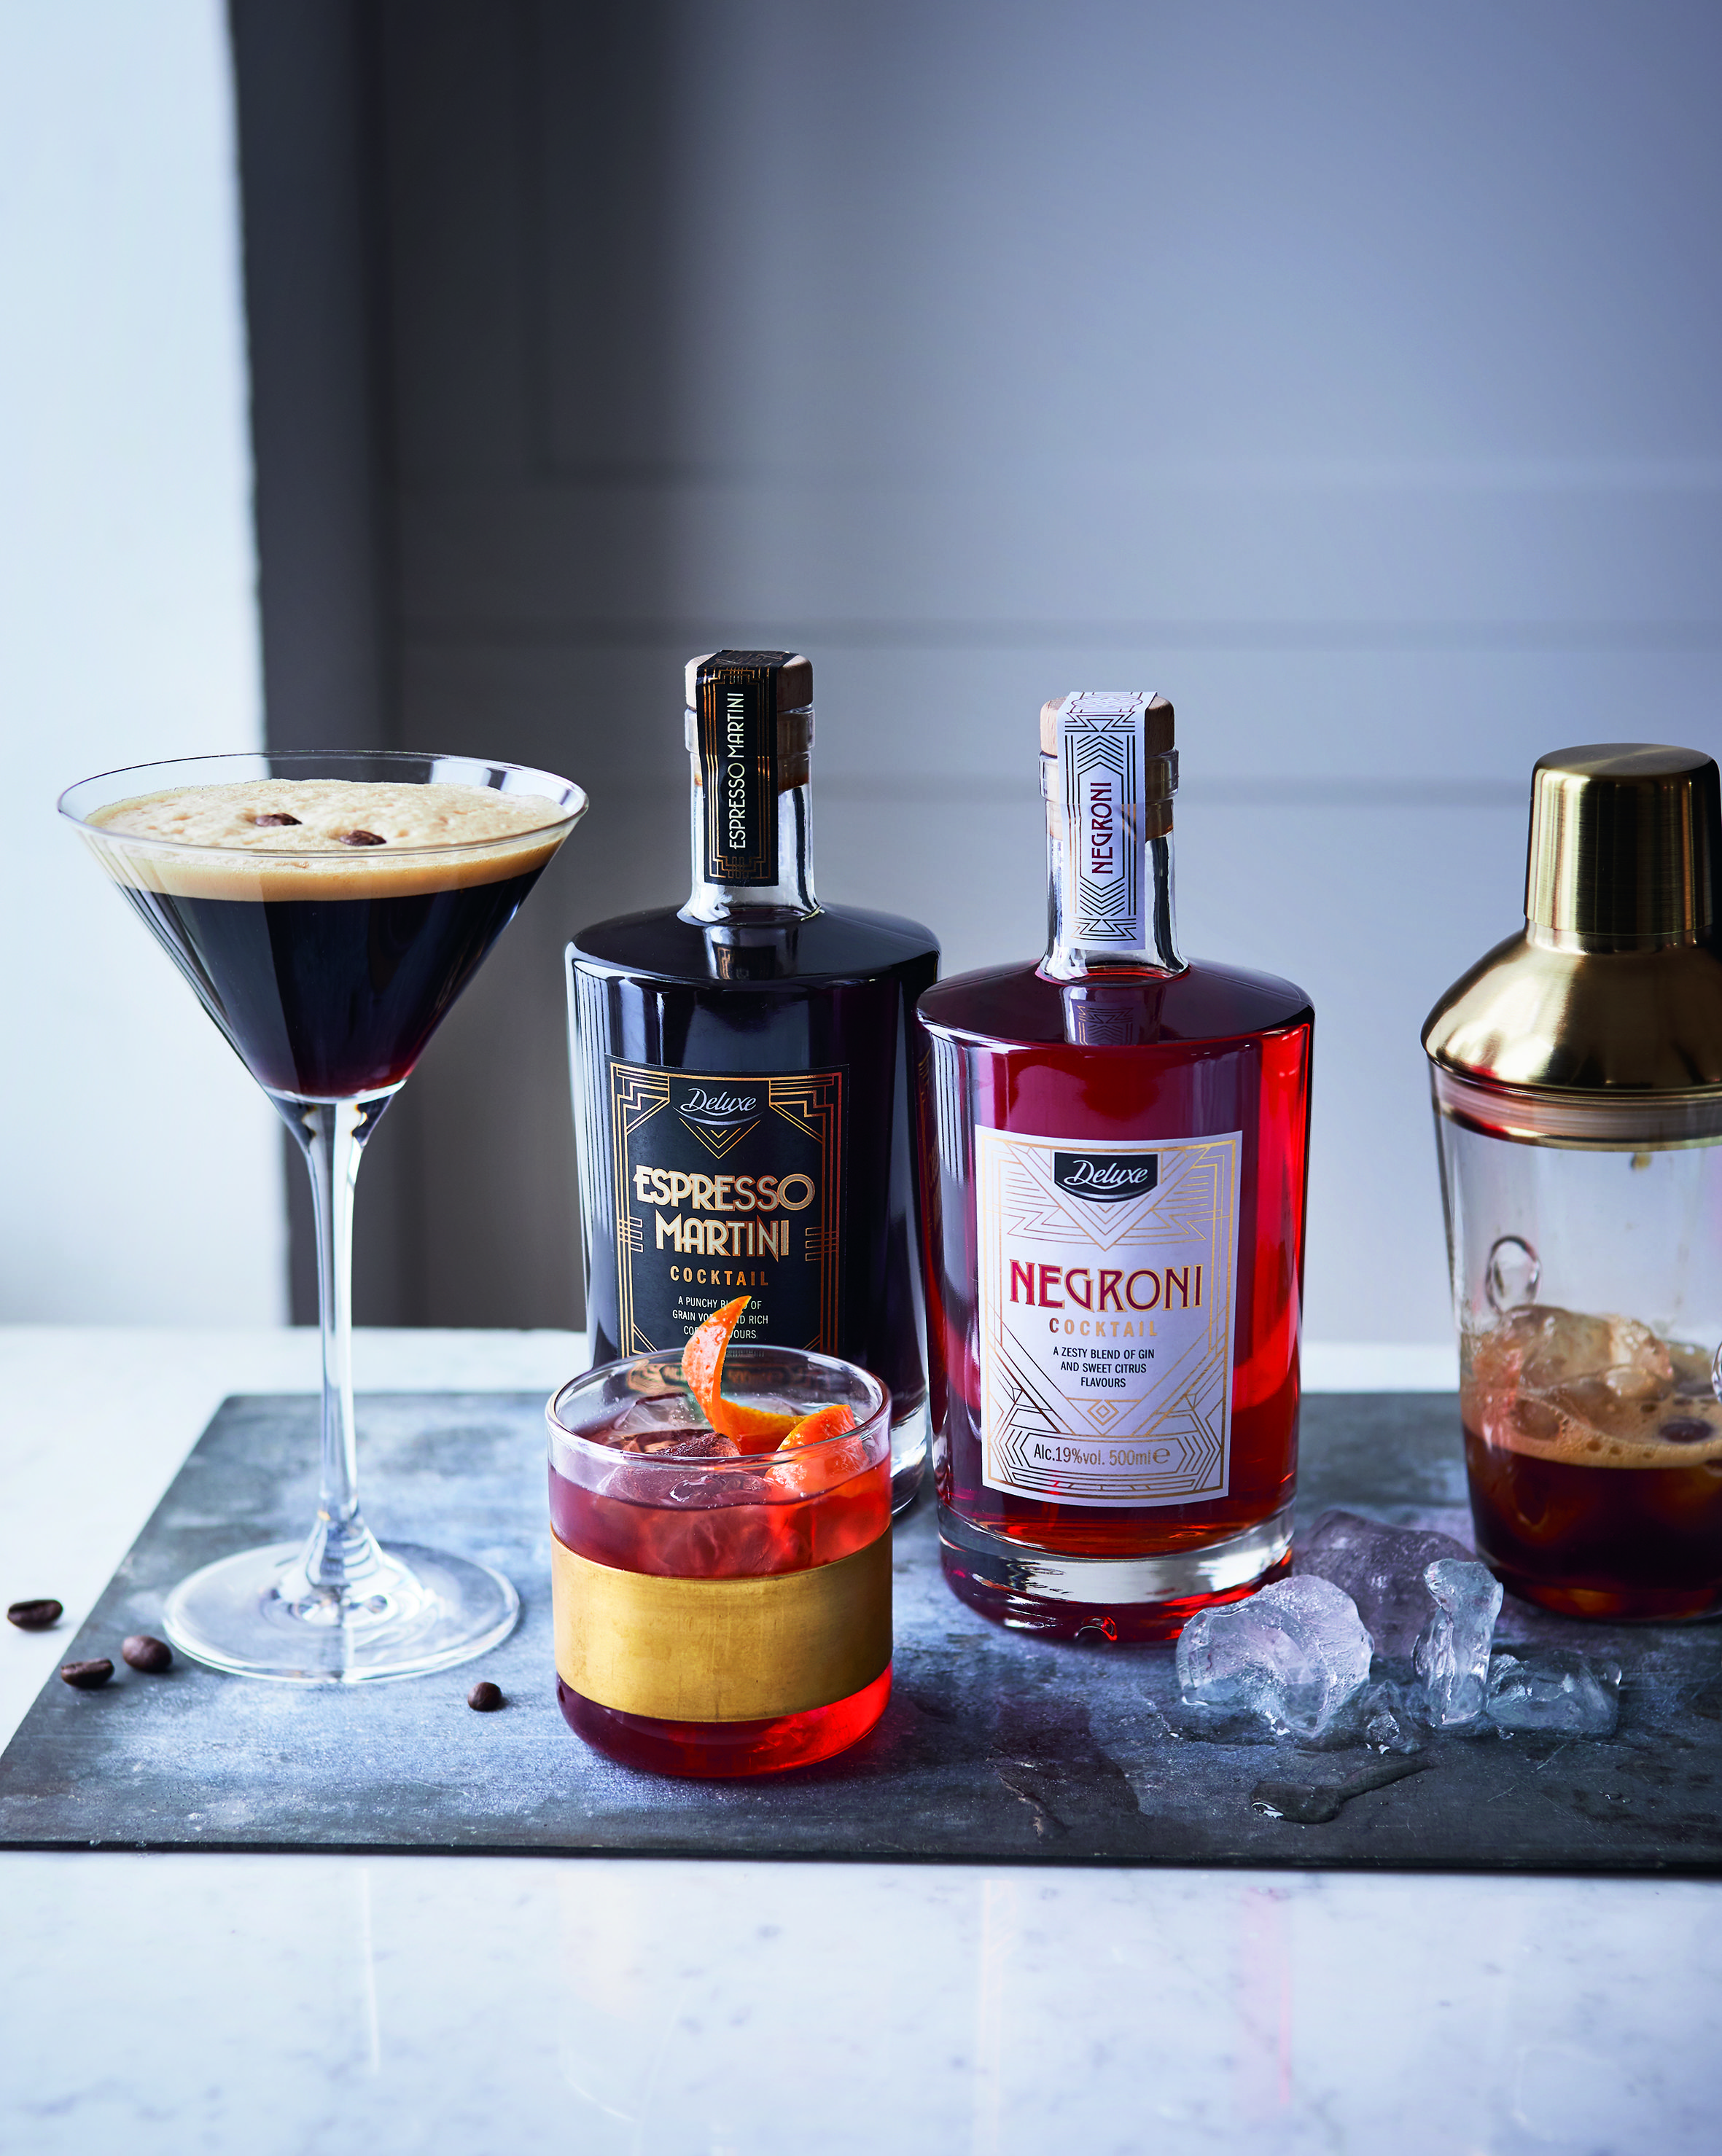 Lidl is launching bottles of pre-mixed Negroni and Espresso Martini cocktails